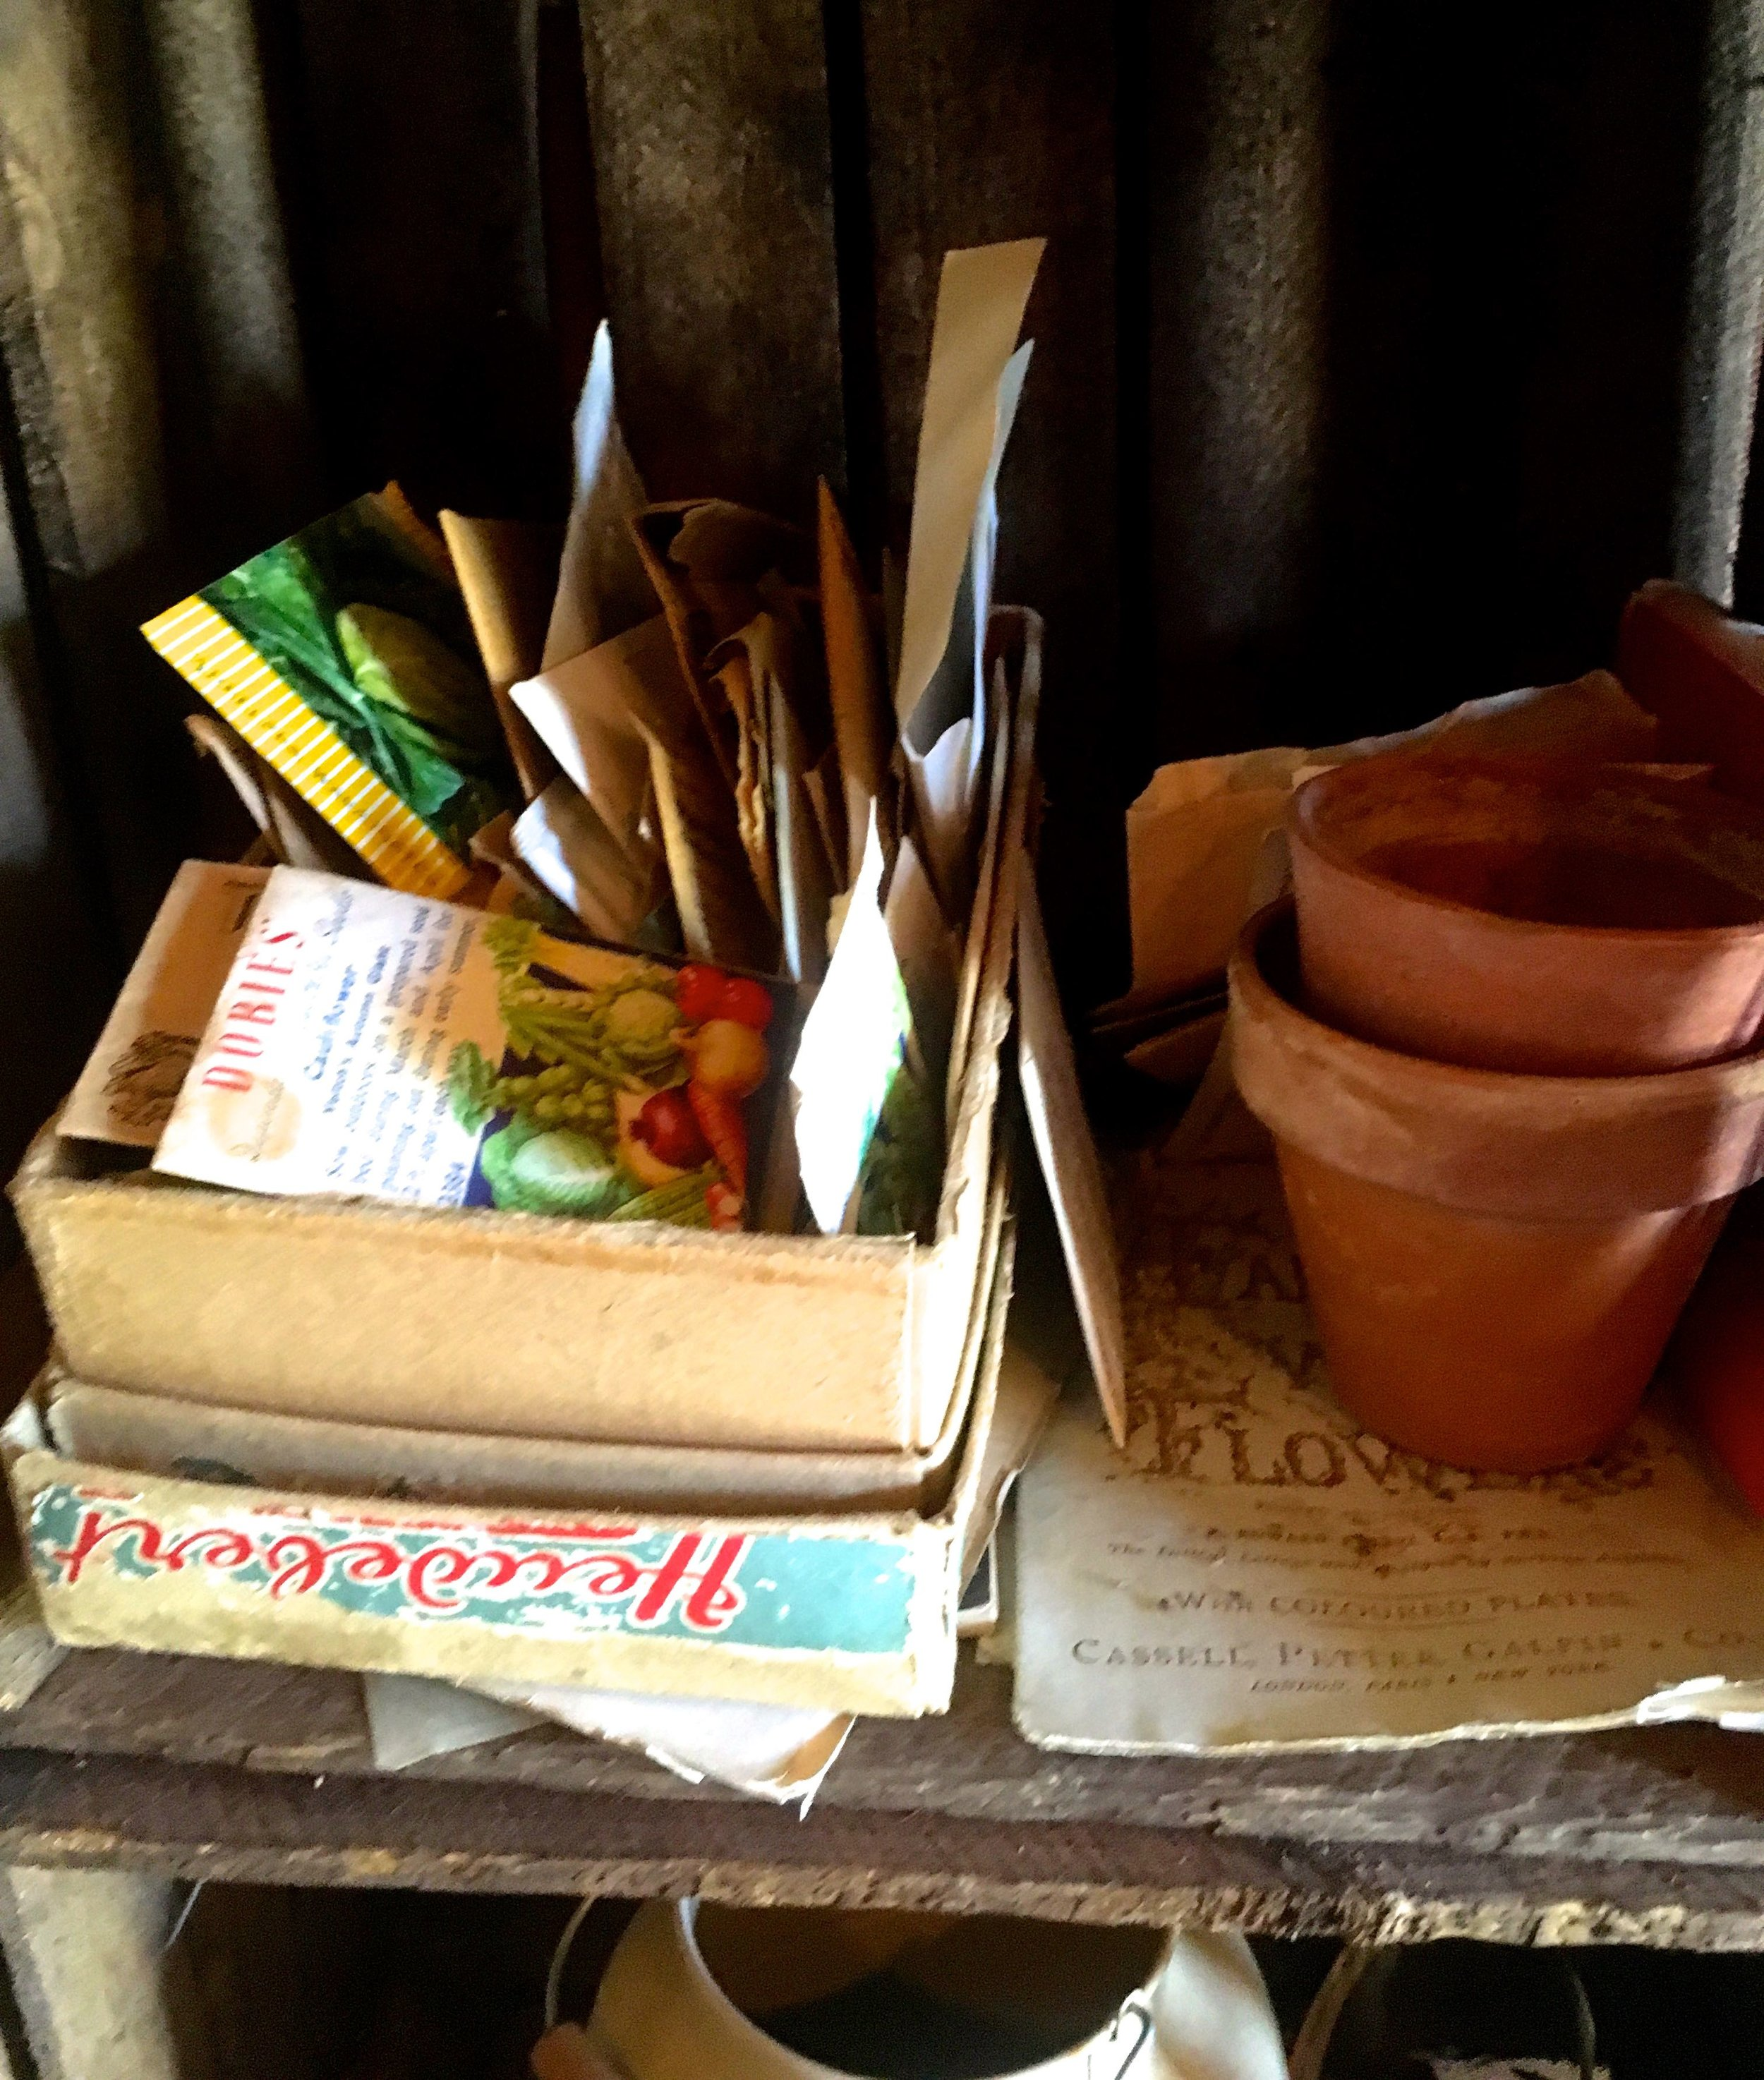 More seeds and vintage looking packets, looking about as neat and orderly as my own seed store